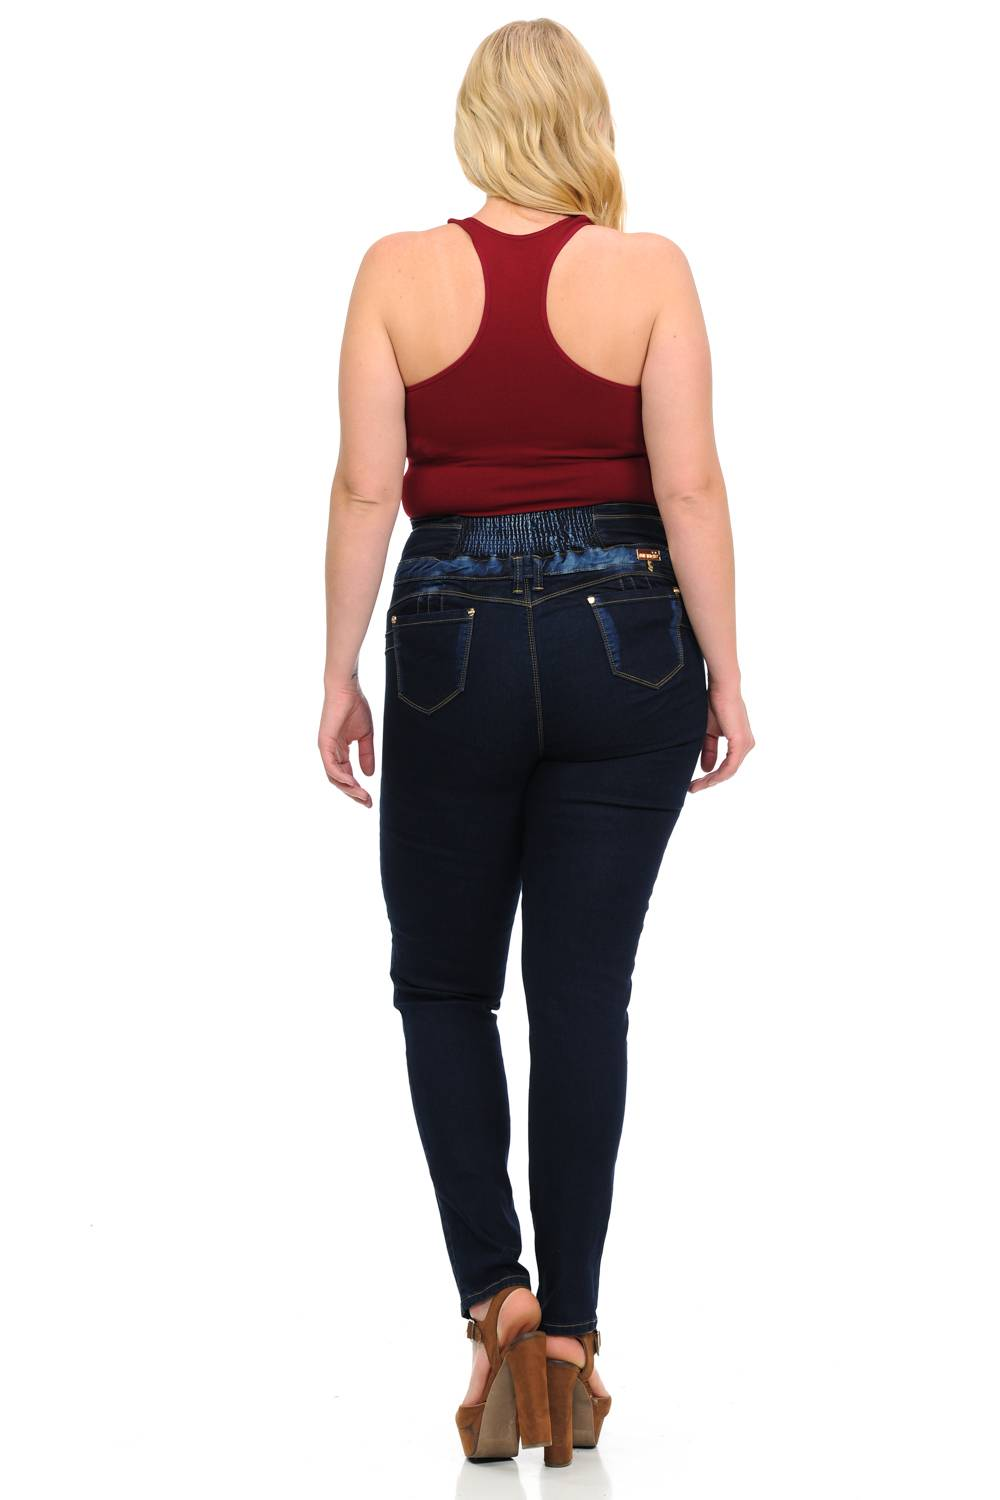 M.Michel Missy Size High Waist Missy Up Jeans